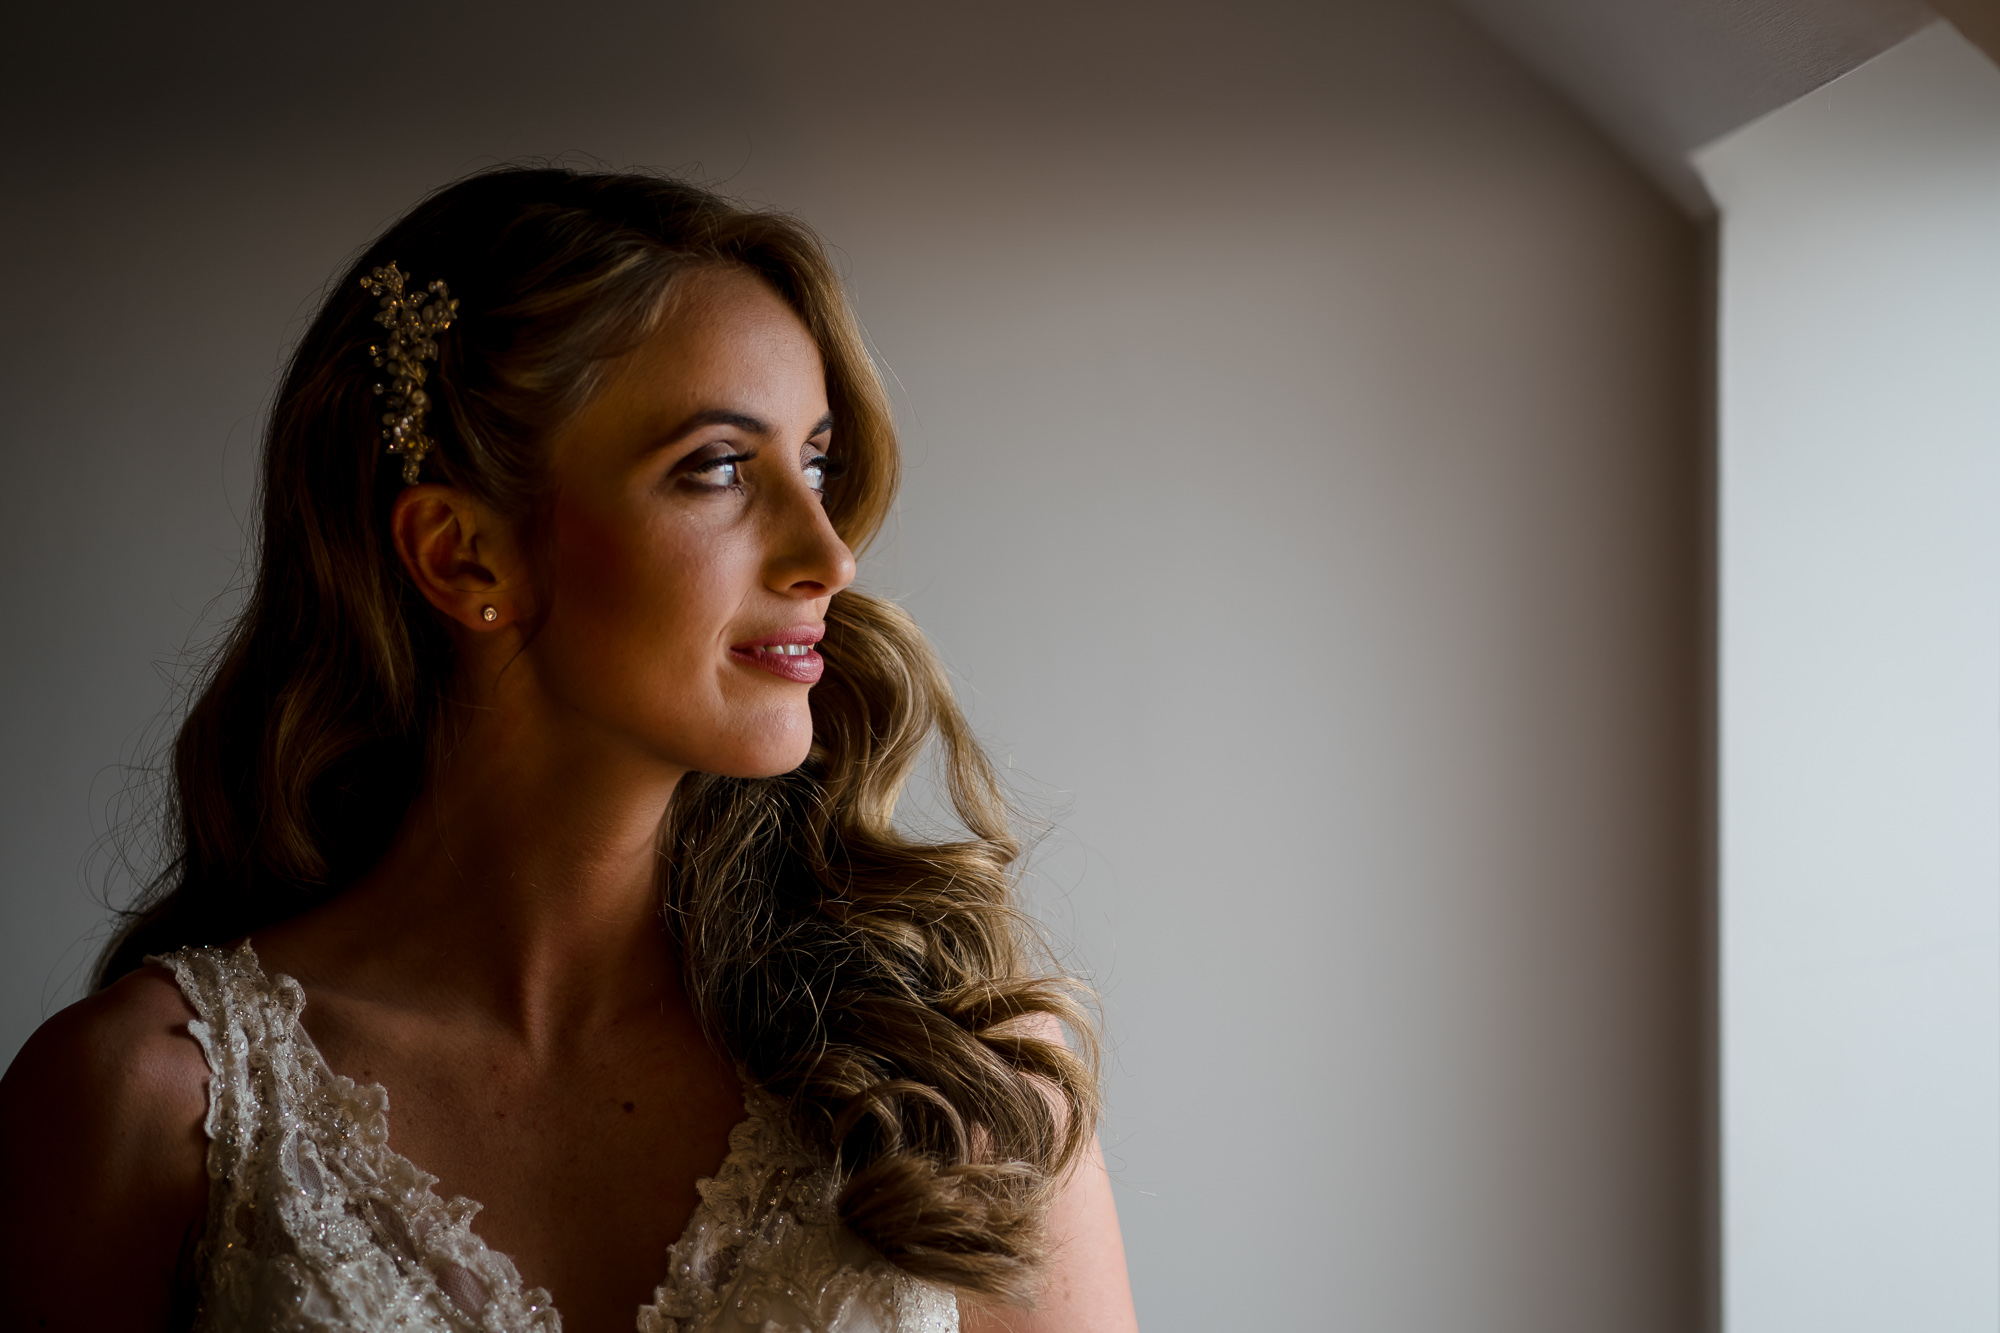 Tower Hill BArn Wedding Photographer based in north west england (16 of 35).jpg